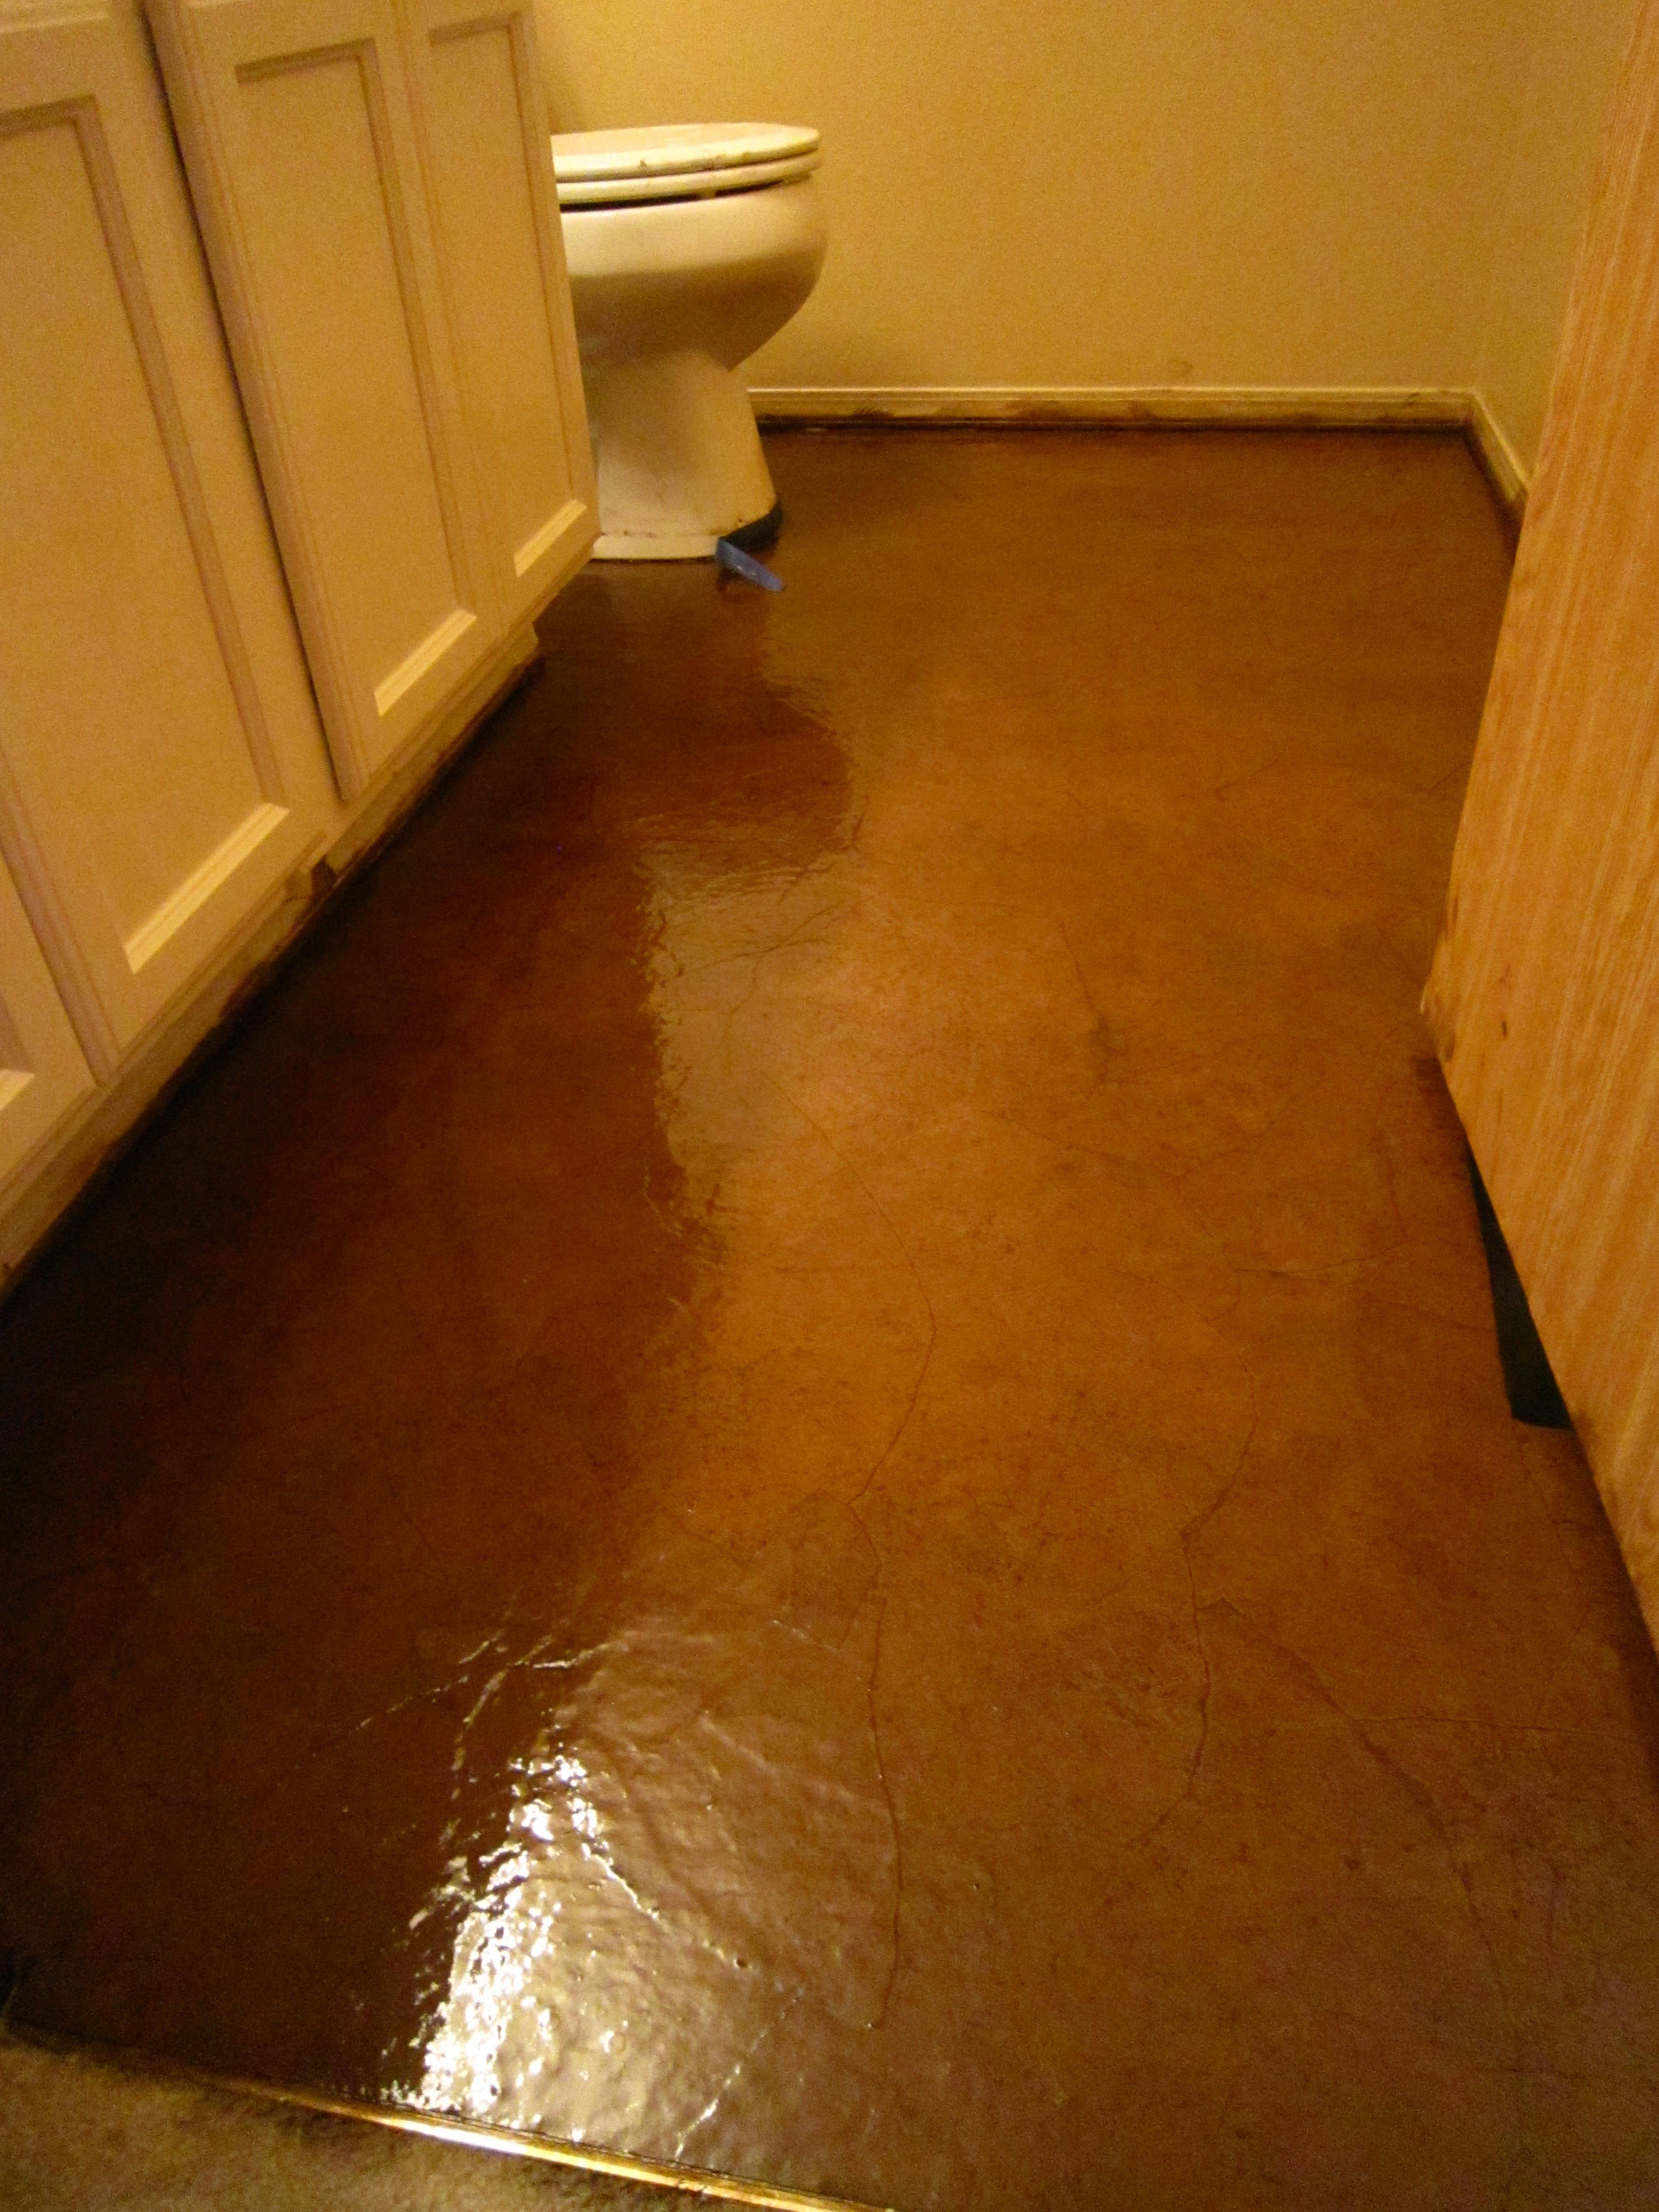 Diy stained brown paper floor awesomeness under 30 do it yourself diy stained brown paper floor awesomeness under 30 do it yourself hardwoodlaminate floor alternative solutioingenieria Choice Image